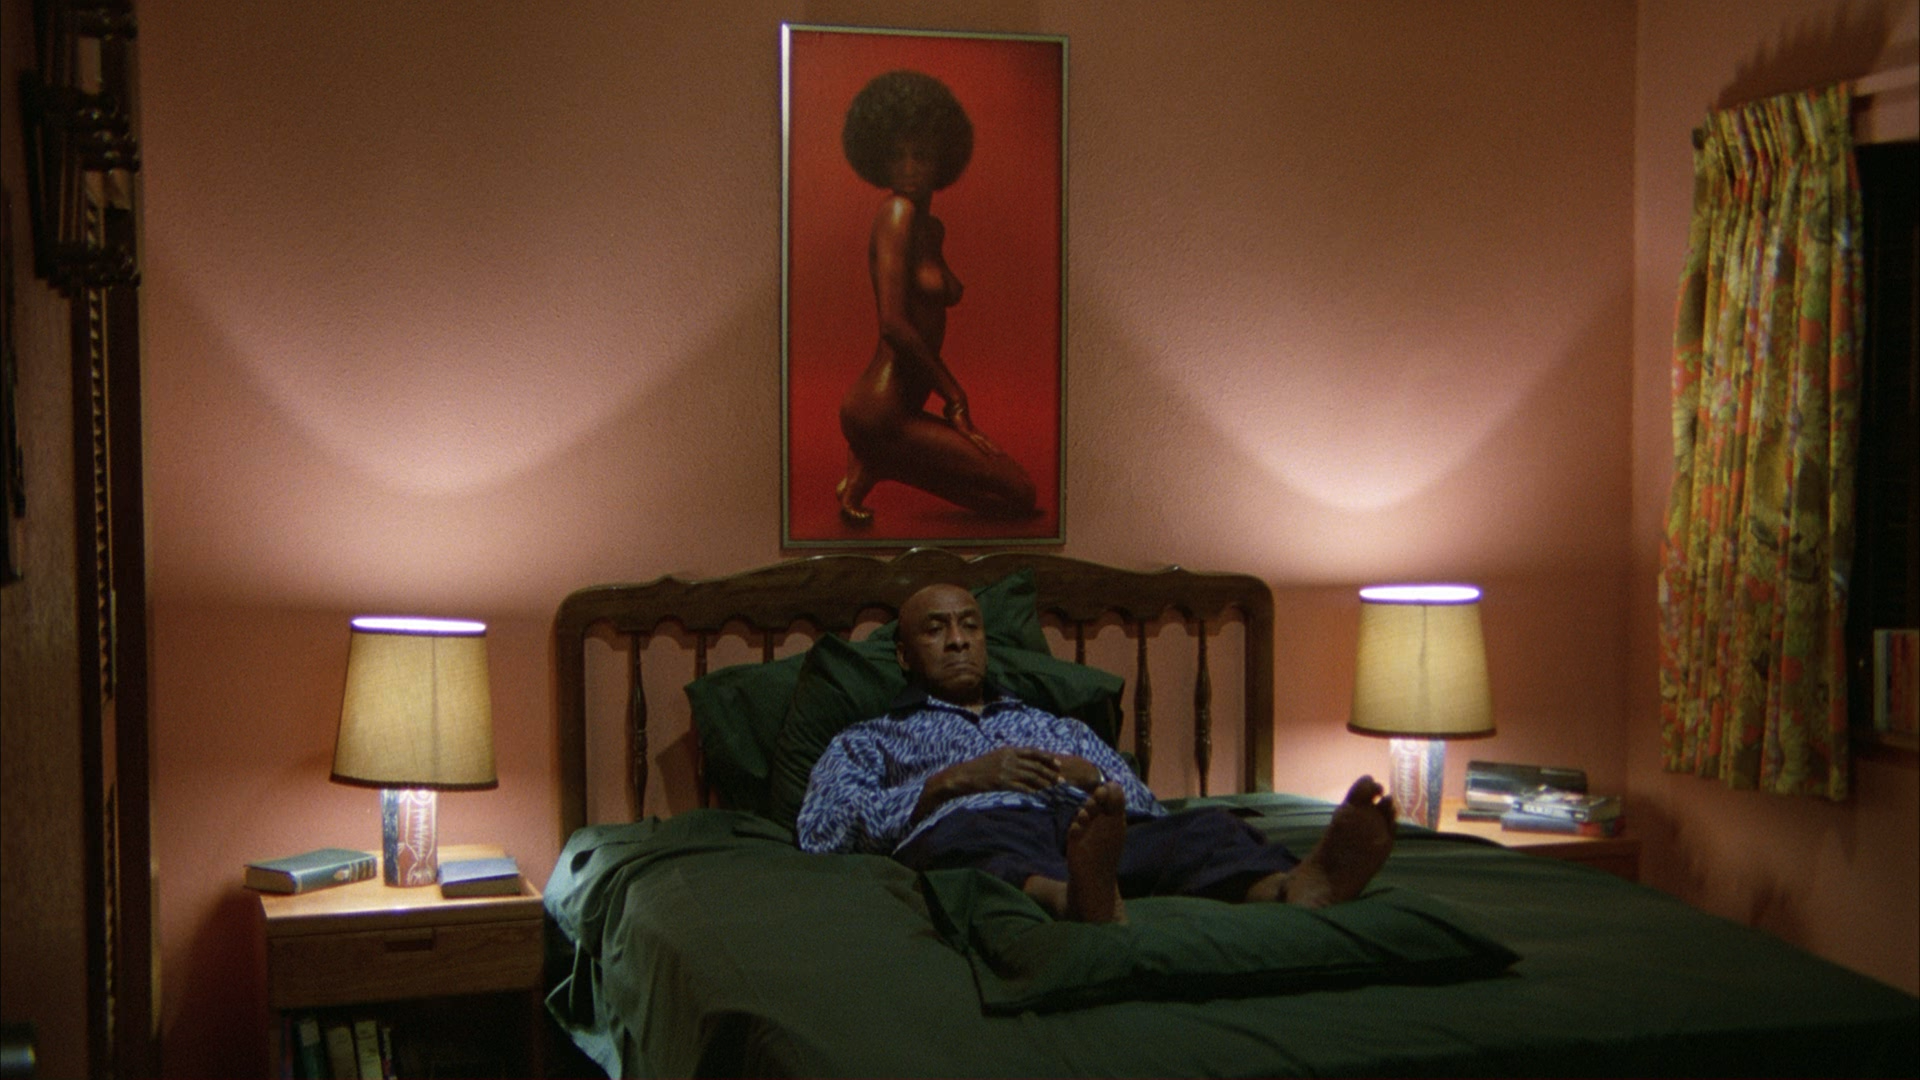 1920x1080 - Scatman Crothers Wallpapers 1